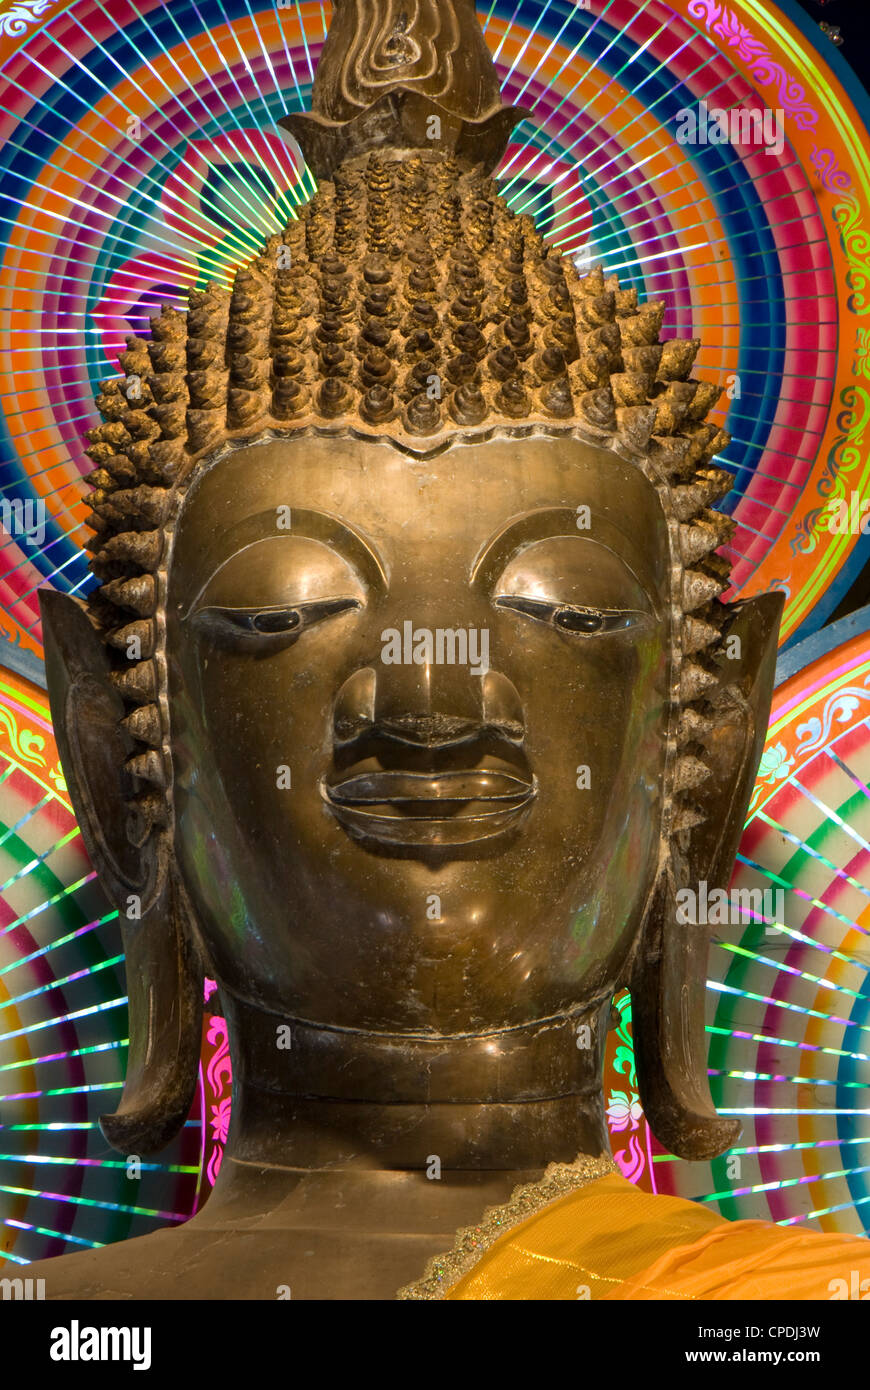 Head of a statue of the Buddha, Wat Ong Teu, Vientiane, Laos, Indochina, Southeast Asia, Asia Stock Photo